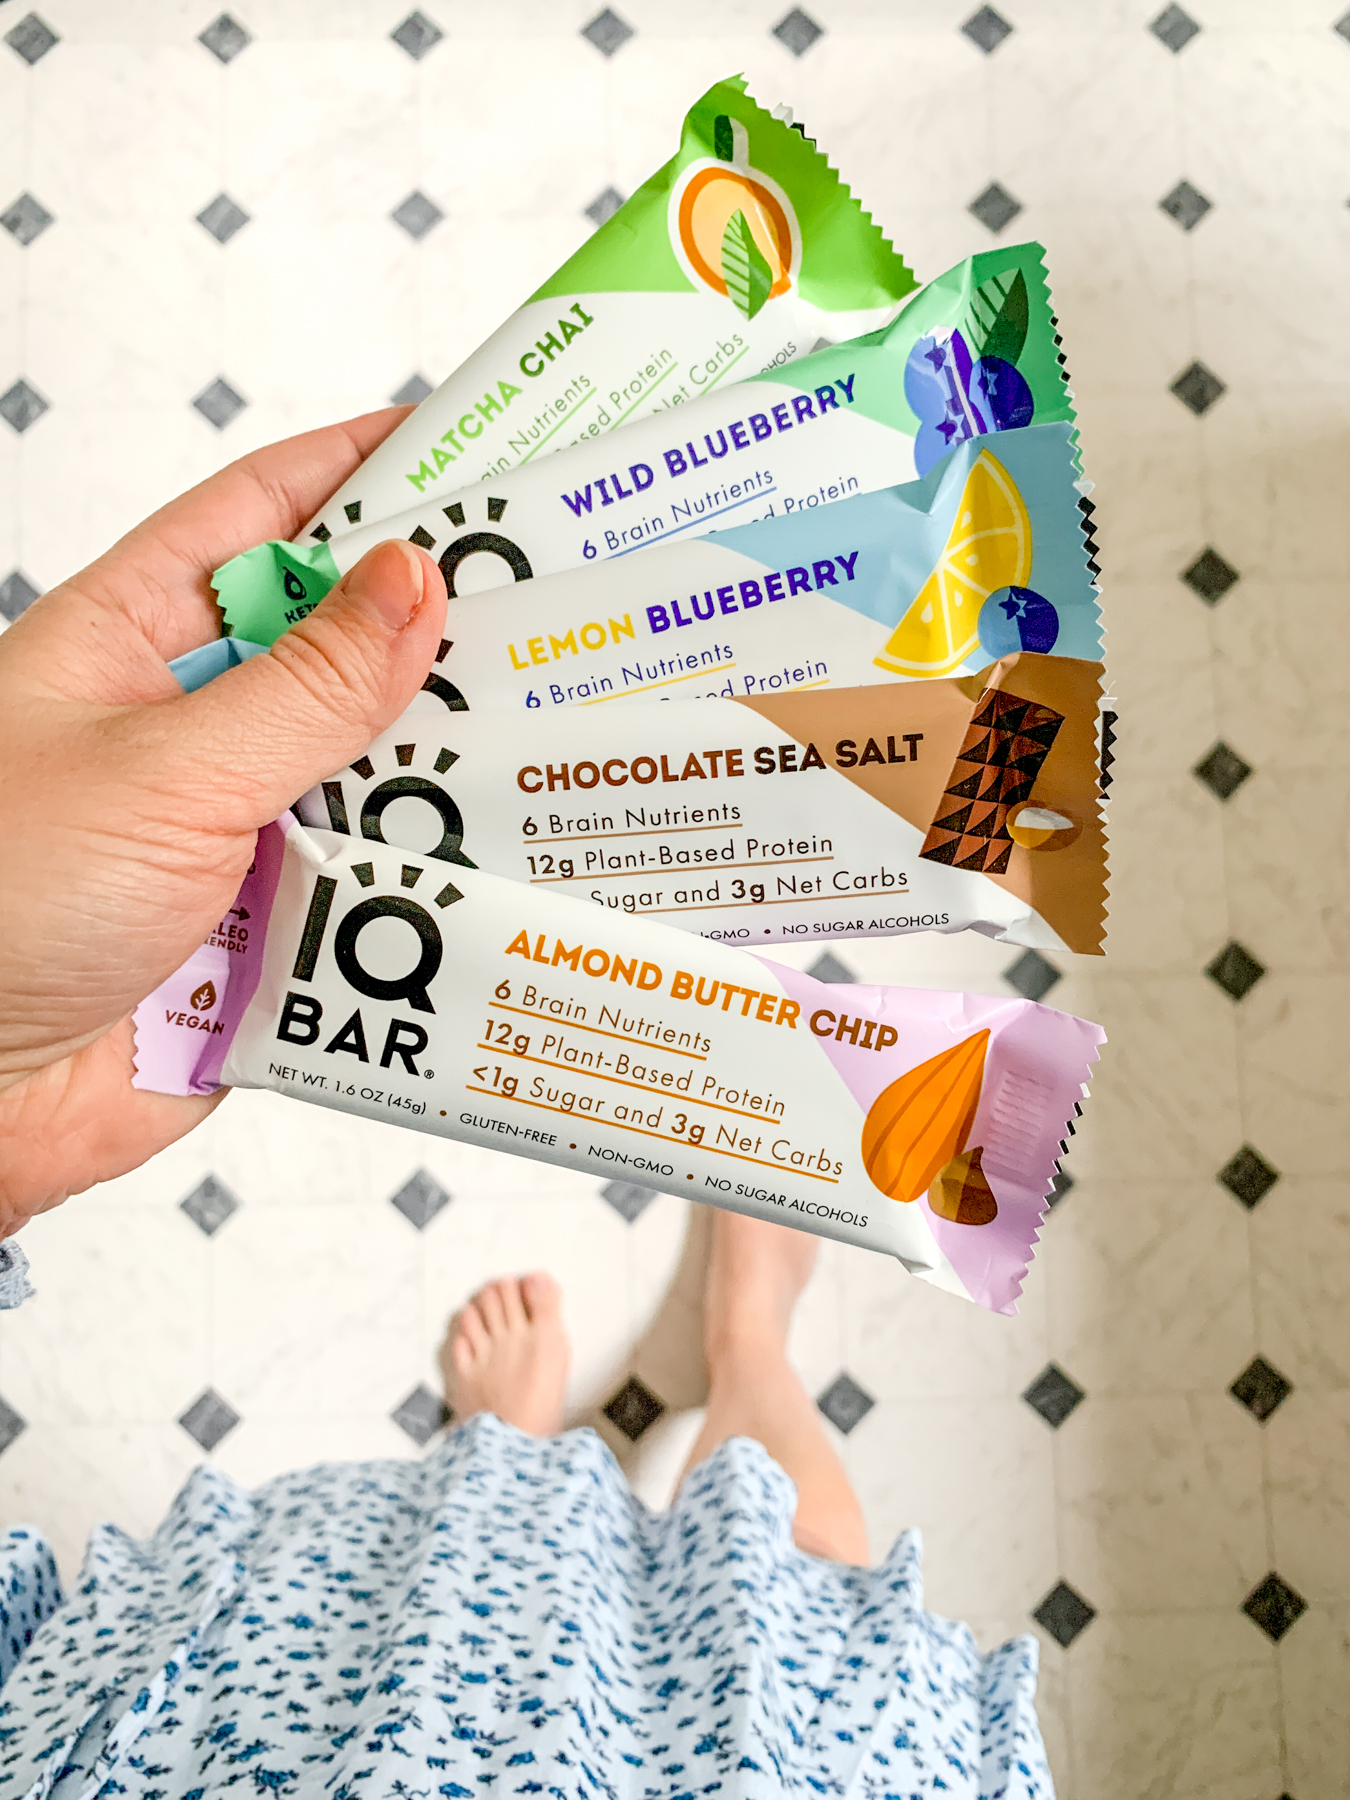 Holding different flavors of IQ bars